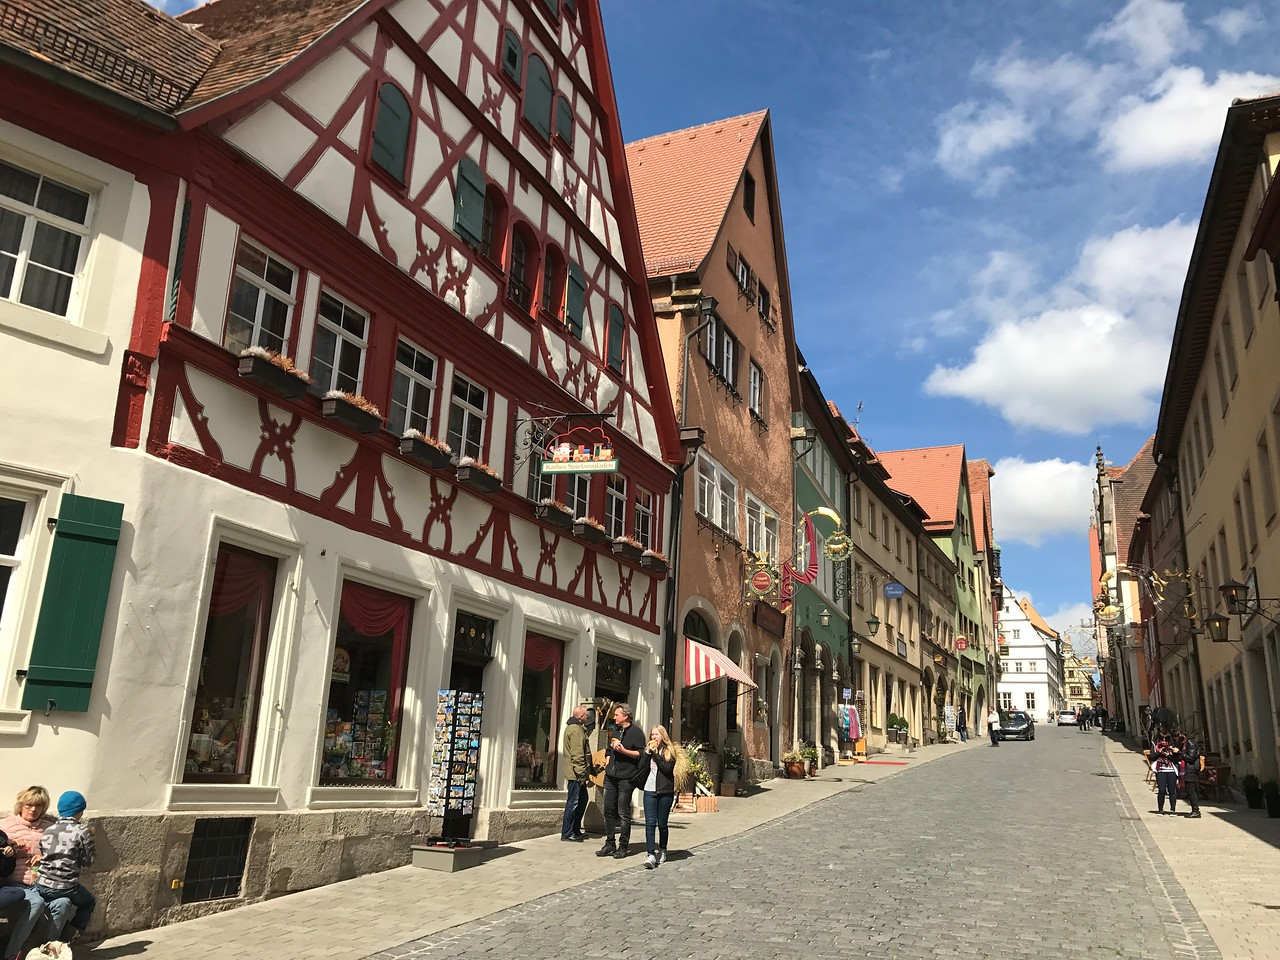 A side street off of Marktplatz is lined with beautiful old houses and businesses.